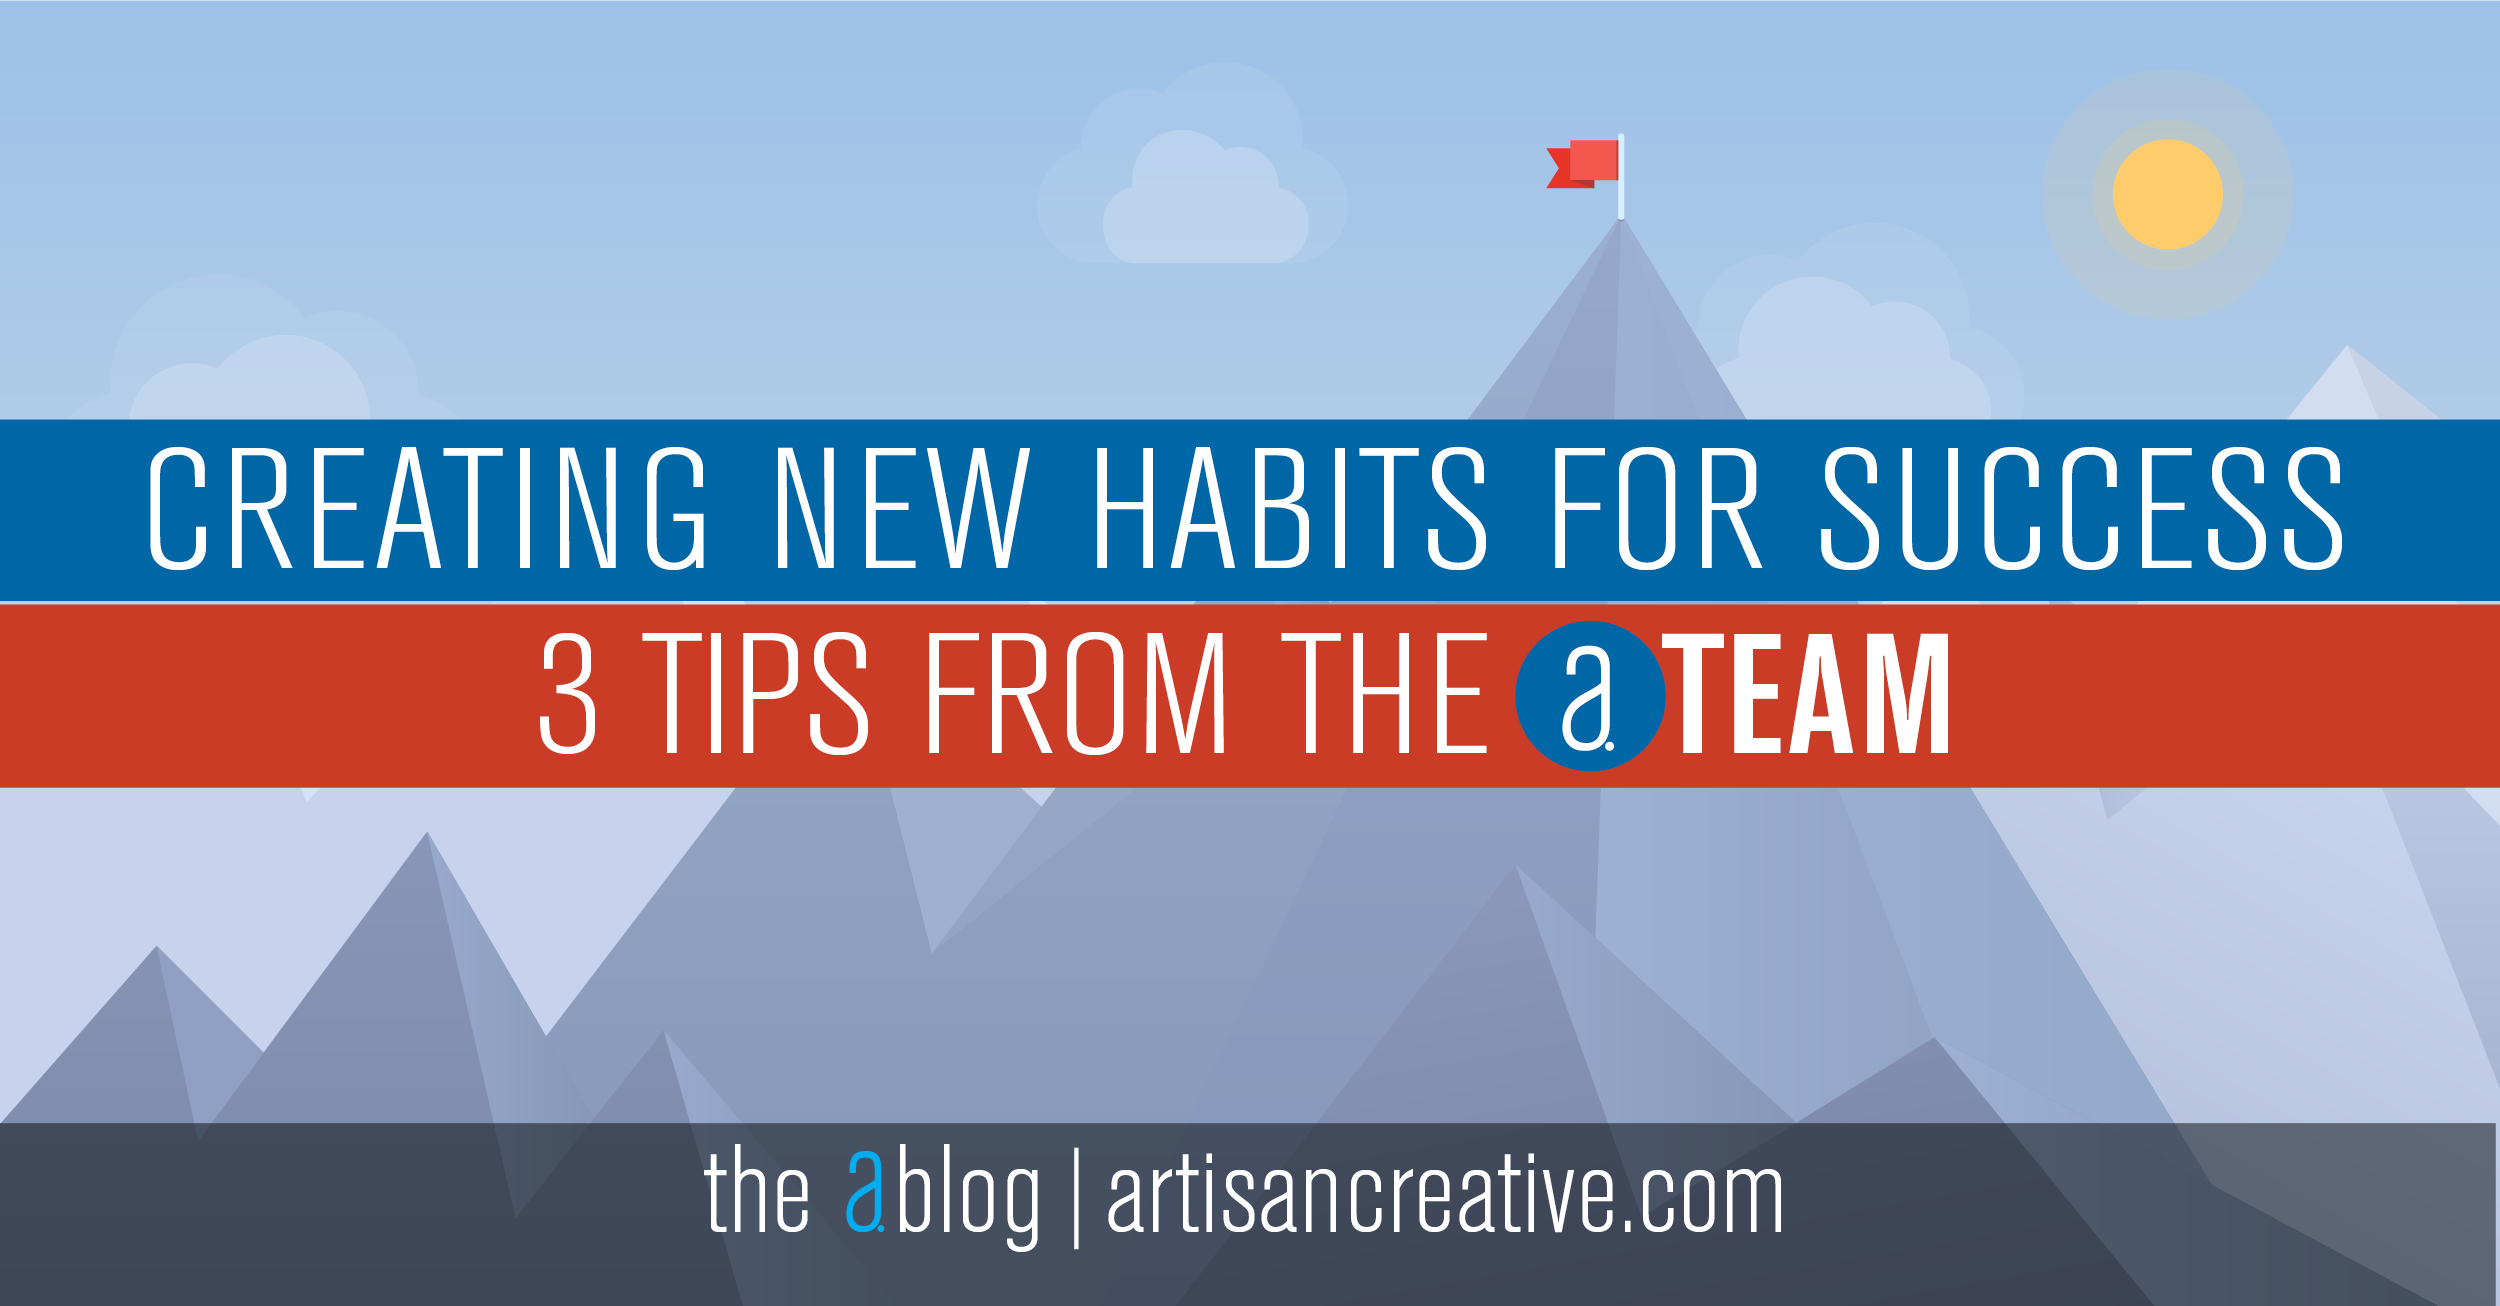 Creating New Habits For Success